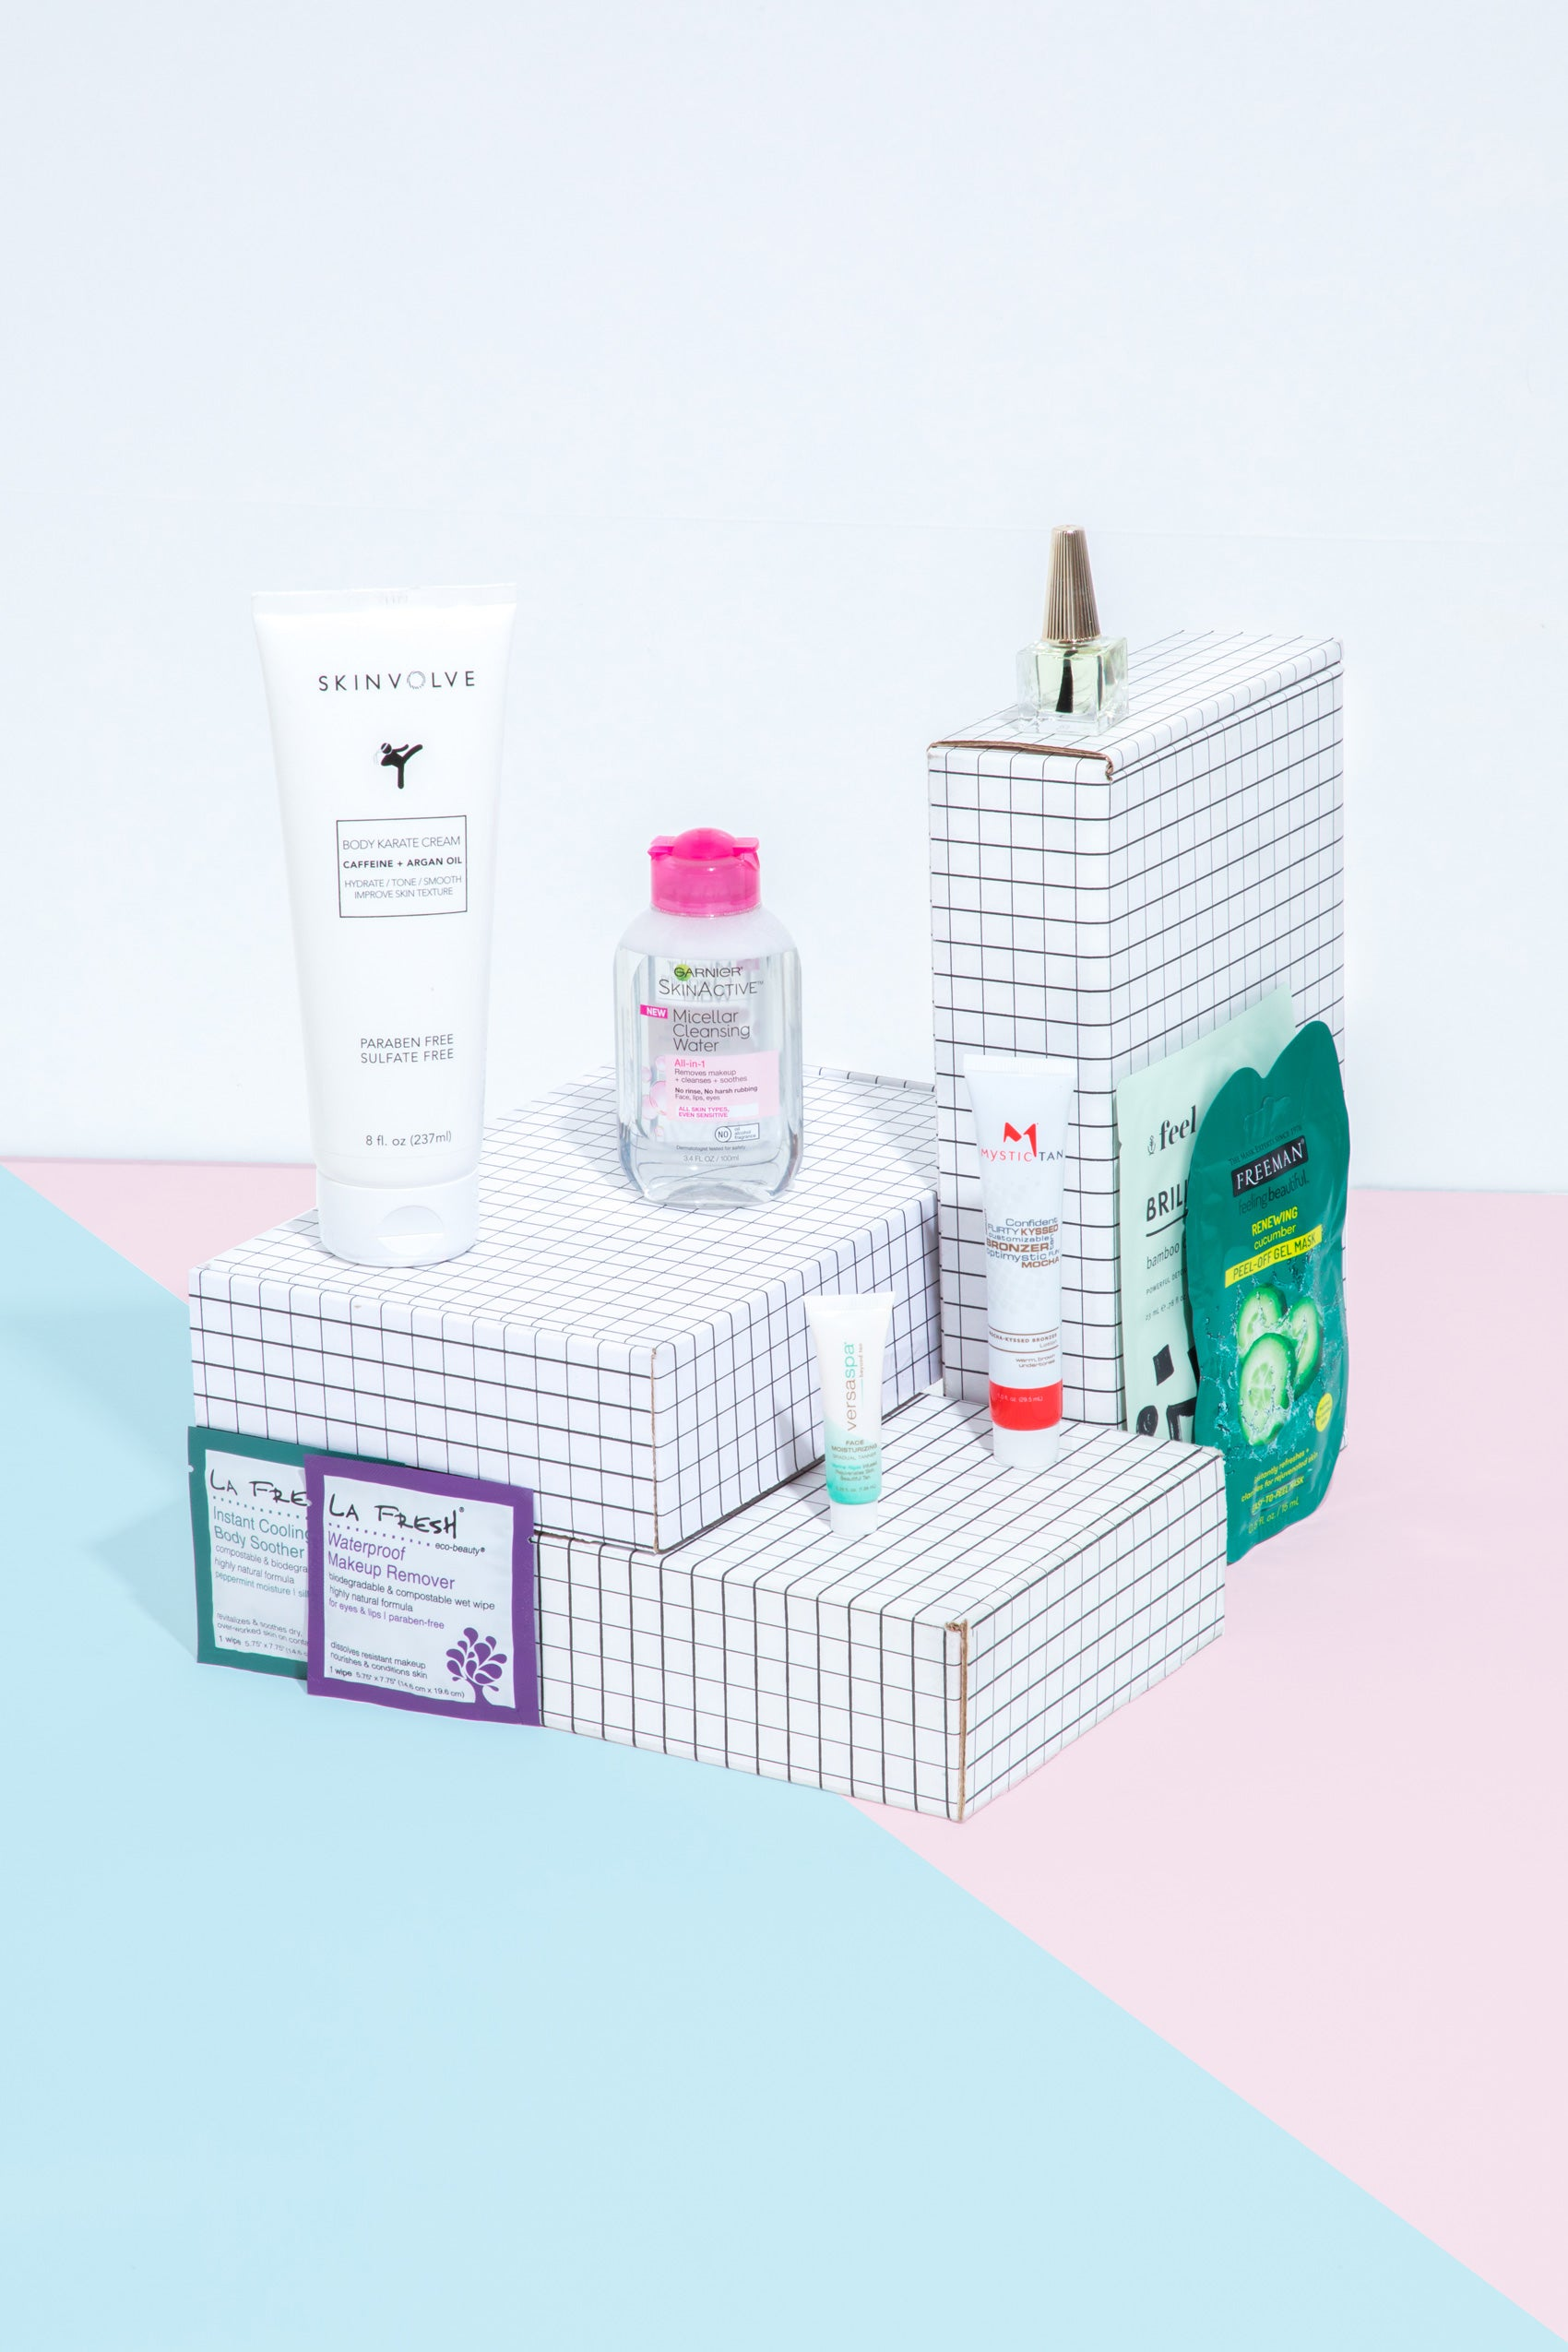 The Skincare Kit